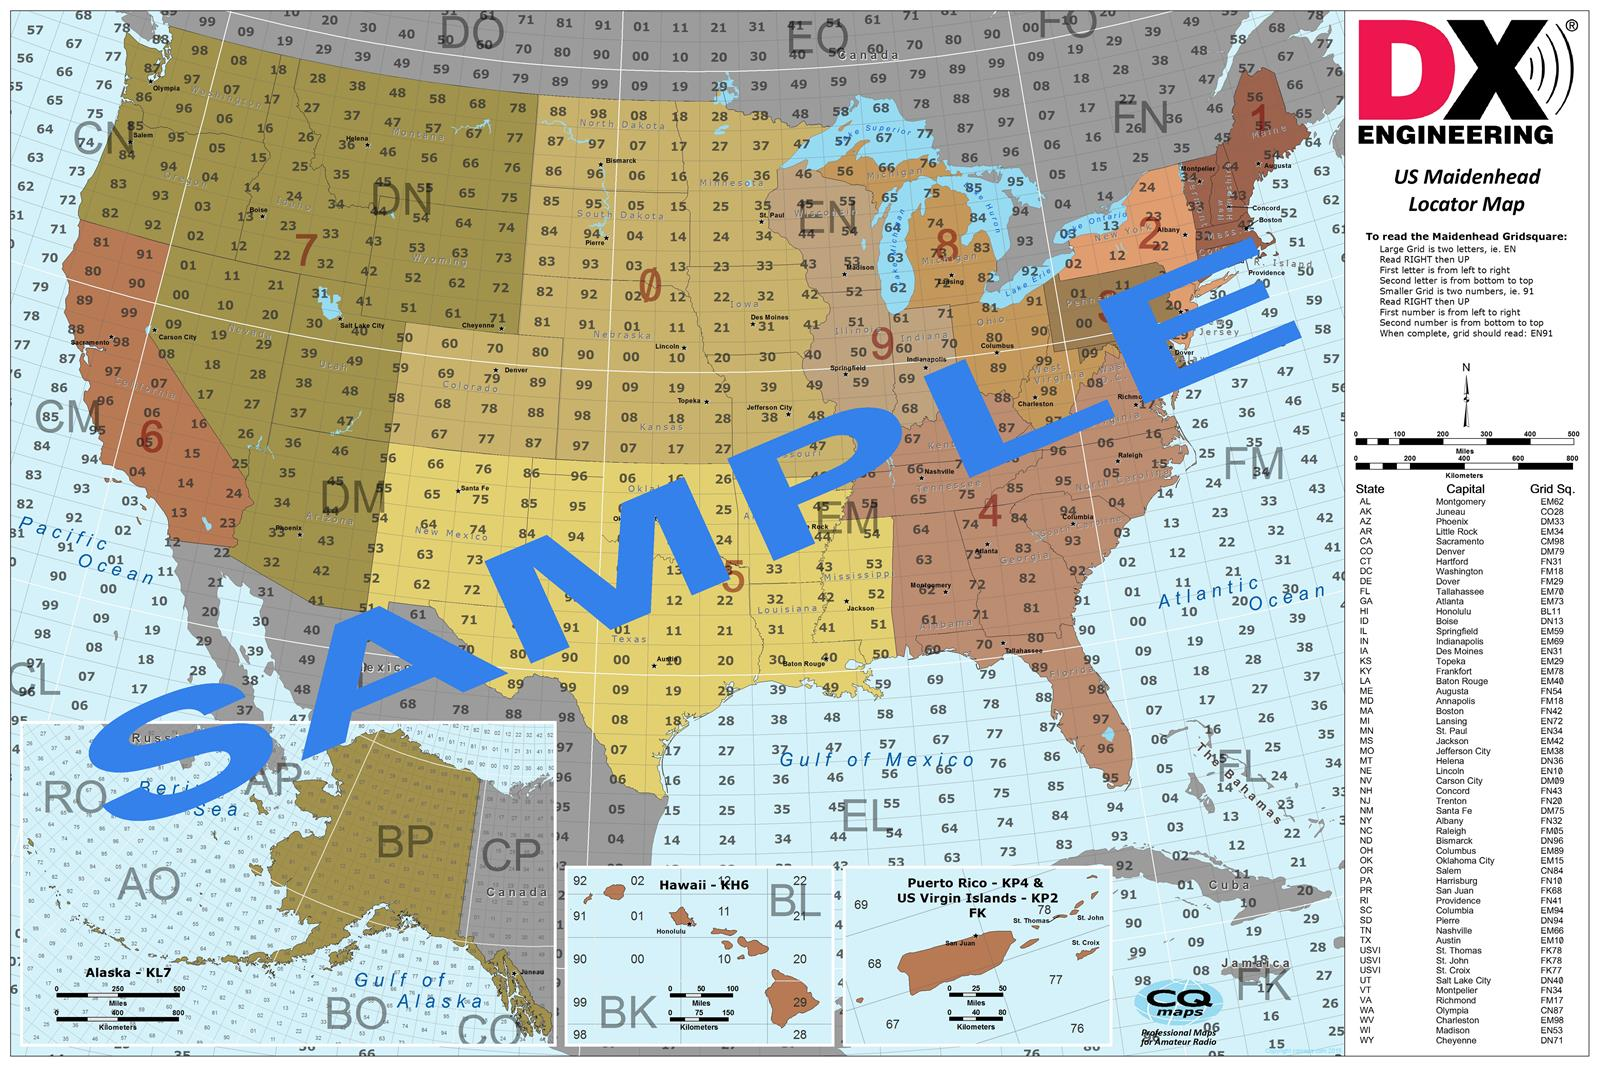 Us Grid Square Map DX and Grid Square Maps USGHWP 24X36